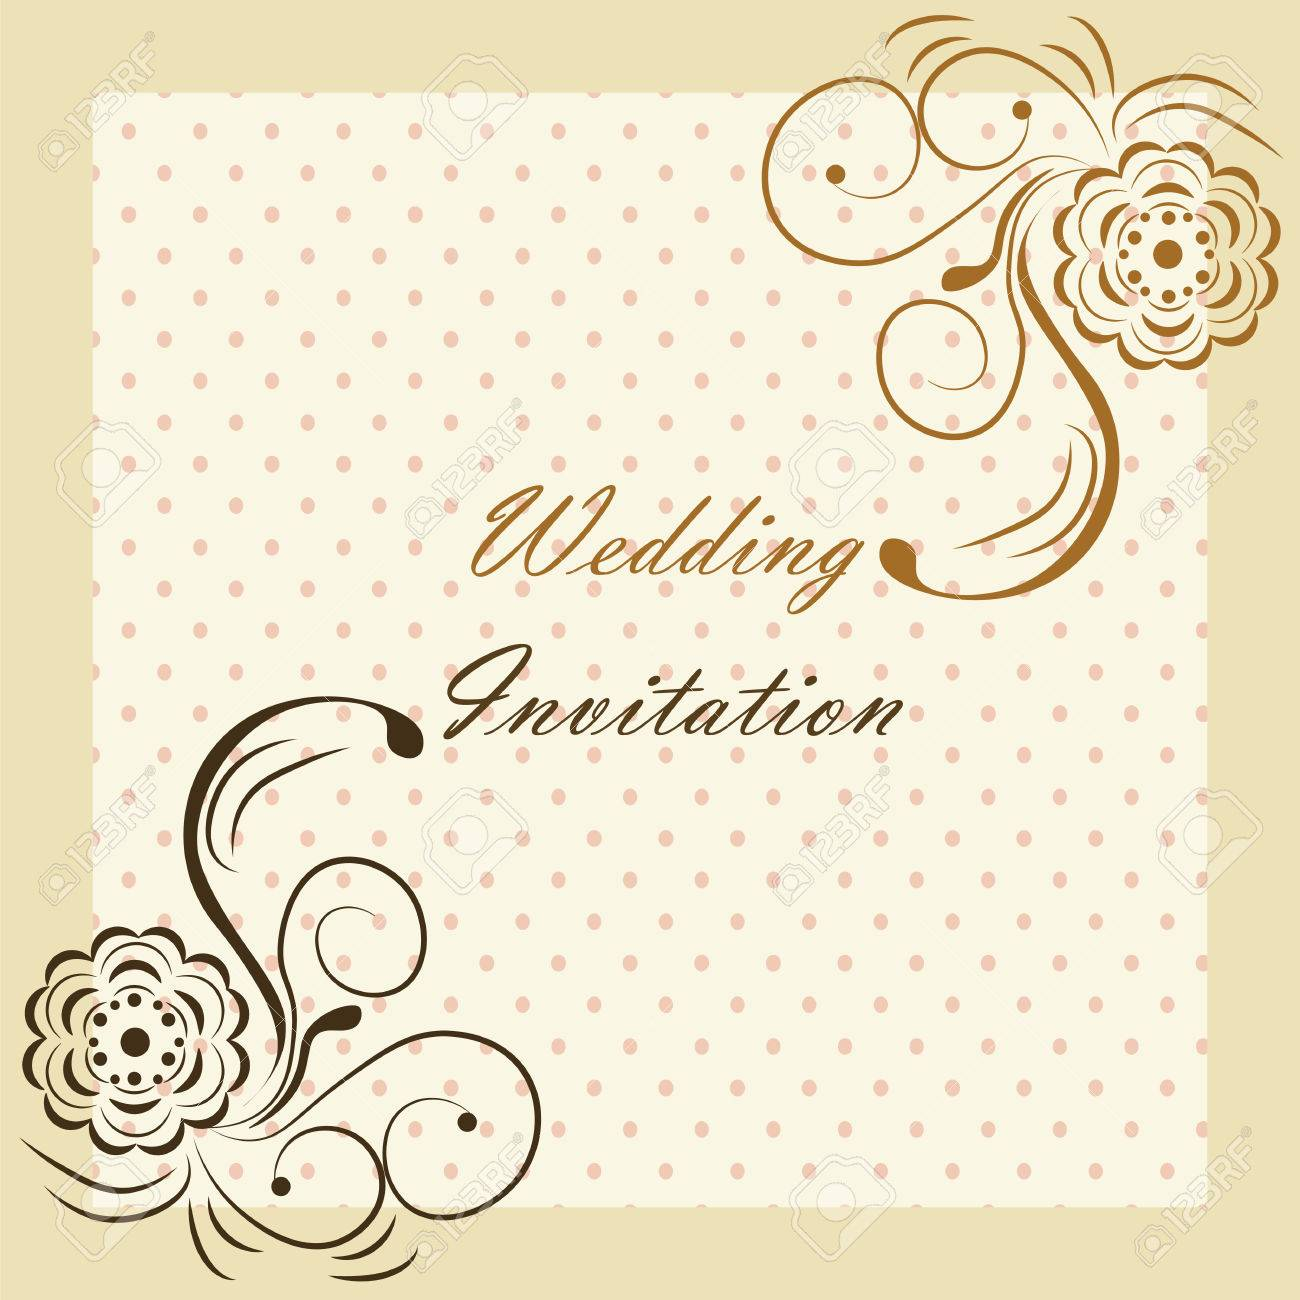 Wedding invitation with rose ornaments vector royalty free cliparts vector wedding invitation with rose ornaments vector stopboris Image collections